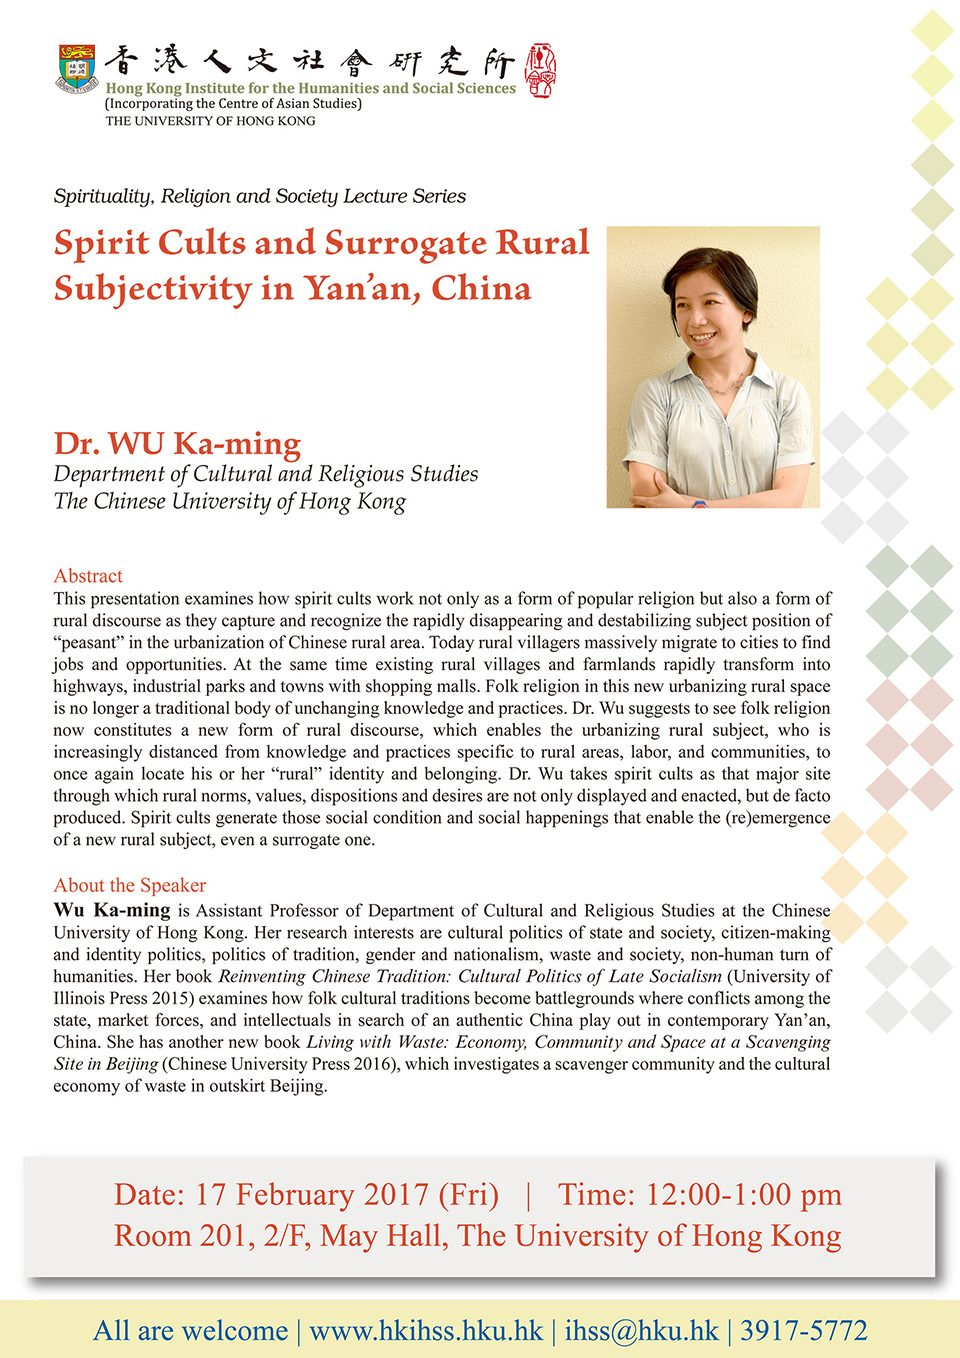 "Spirituality, Religion and Society Lecture Series ""Spirit Cults and Surrogate Rural Subjectivity in Yan'an, China"" by Dr. Ka-ming Wu (February 17, 2017)"